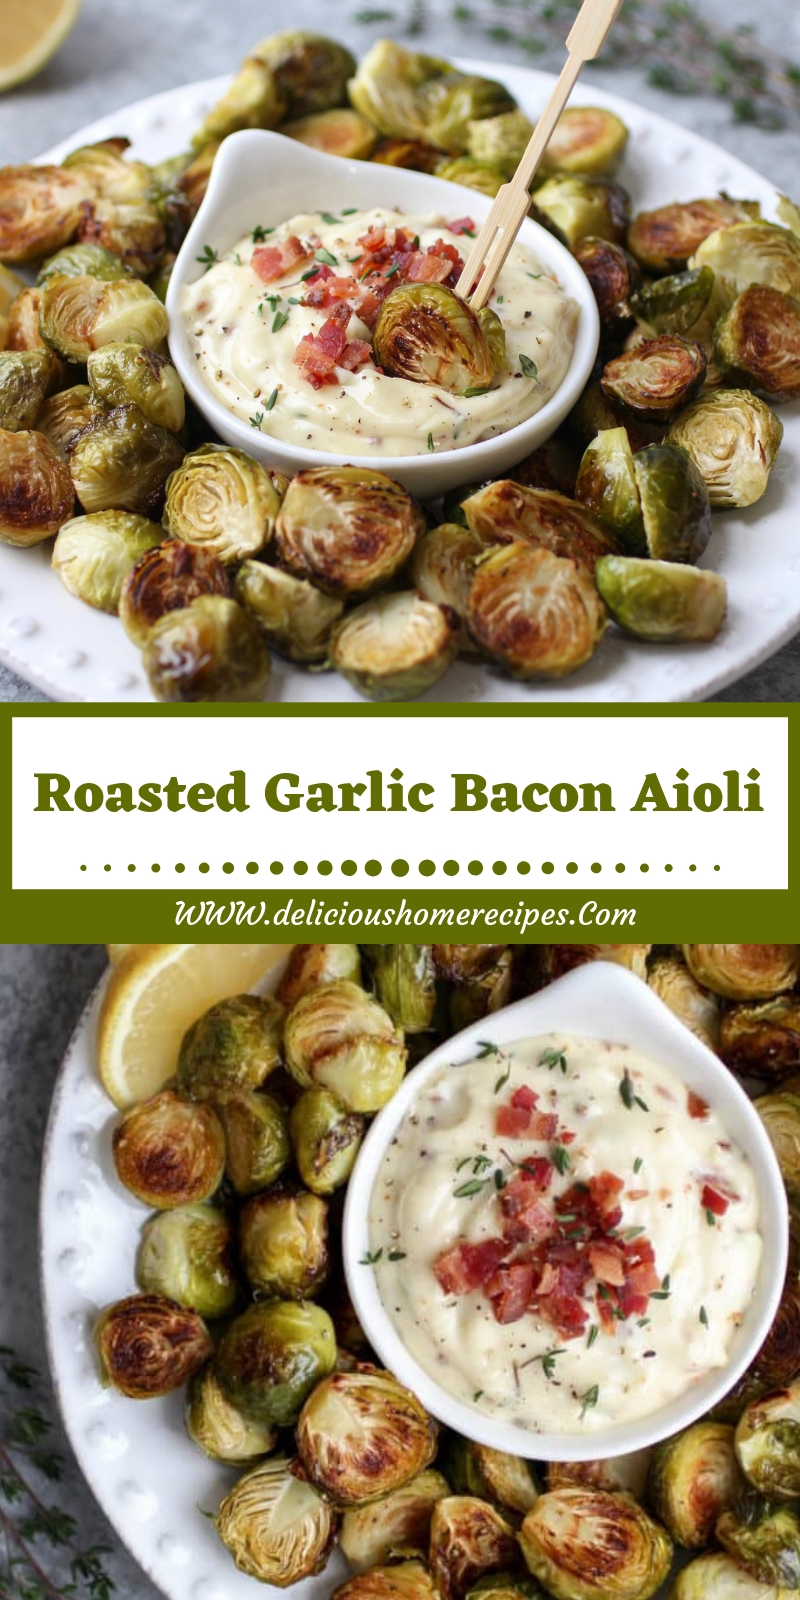 Roasted Garlic Bacon Aioli